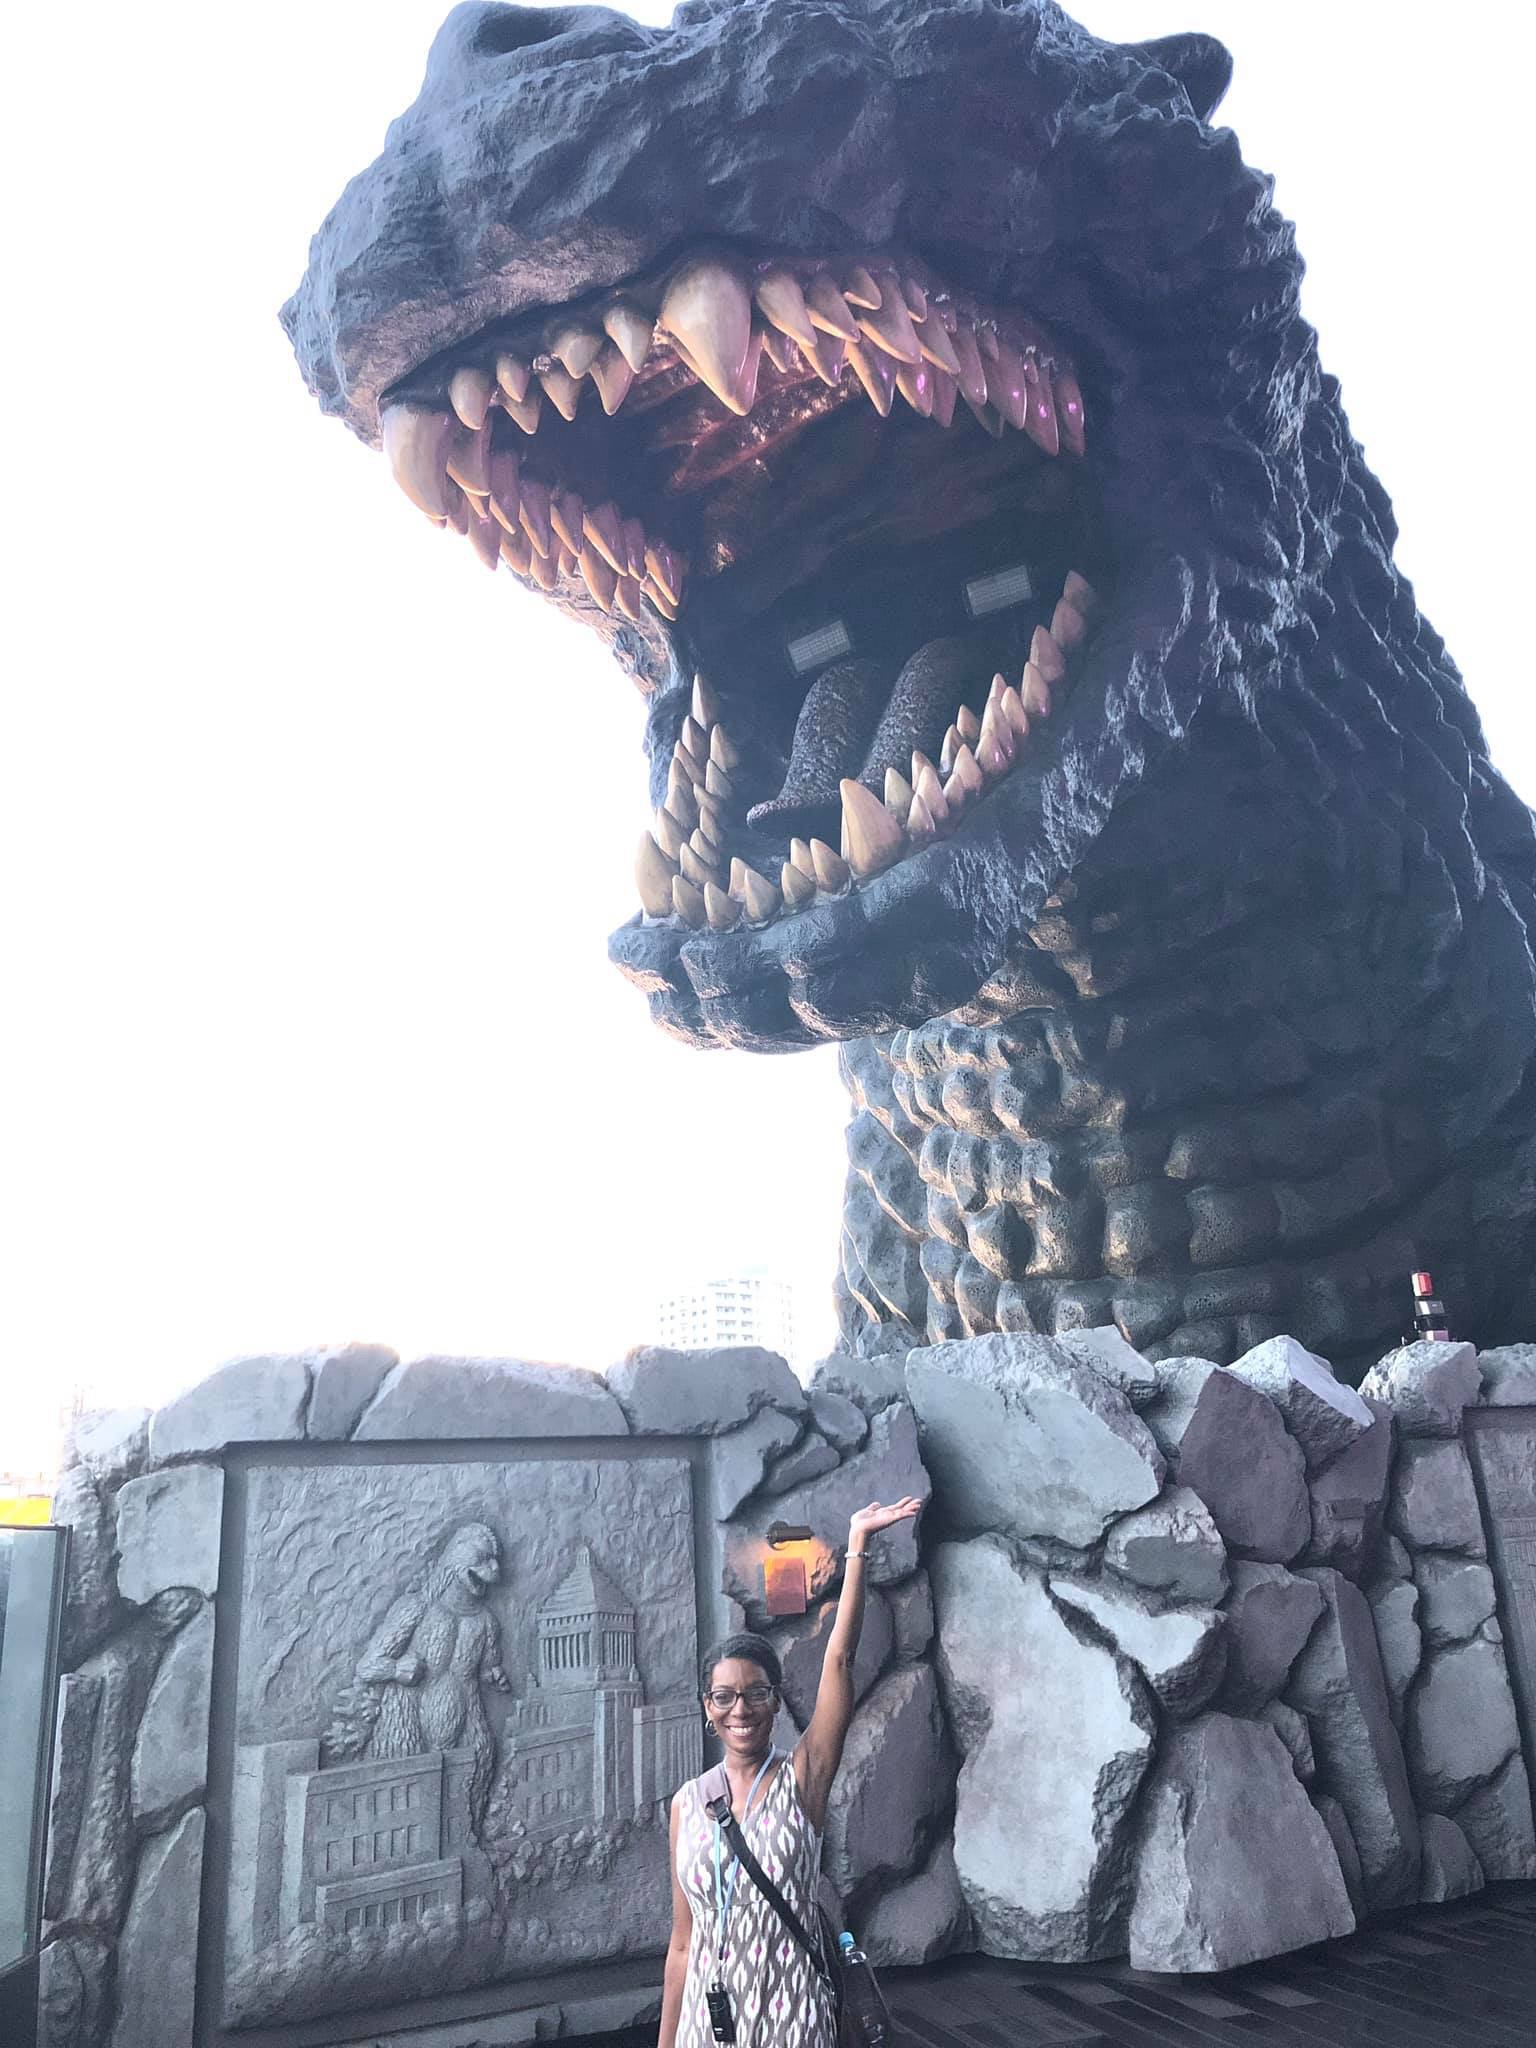 Me standing directly below the Godzilla head.